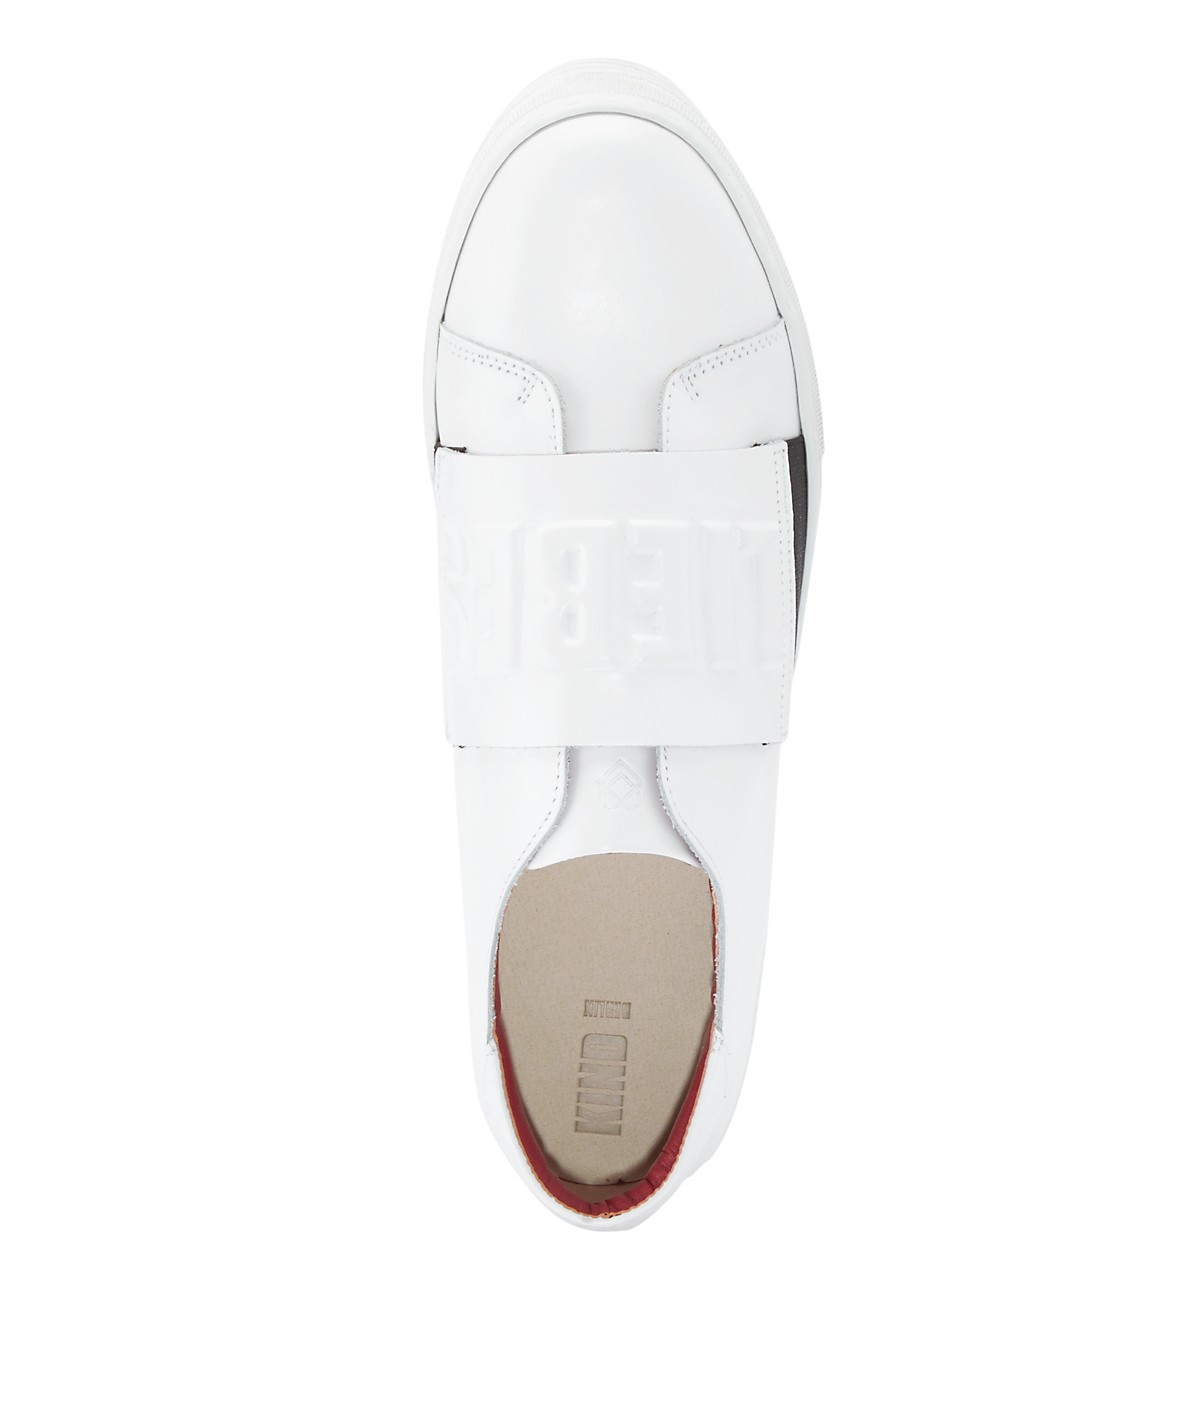 Slip-ons LF173180R from liebeskind